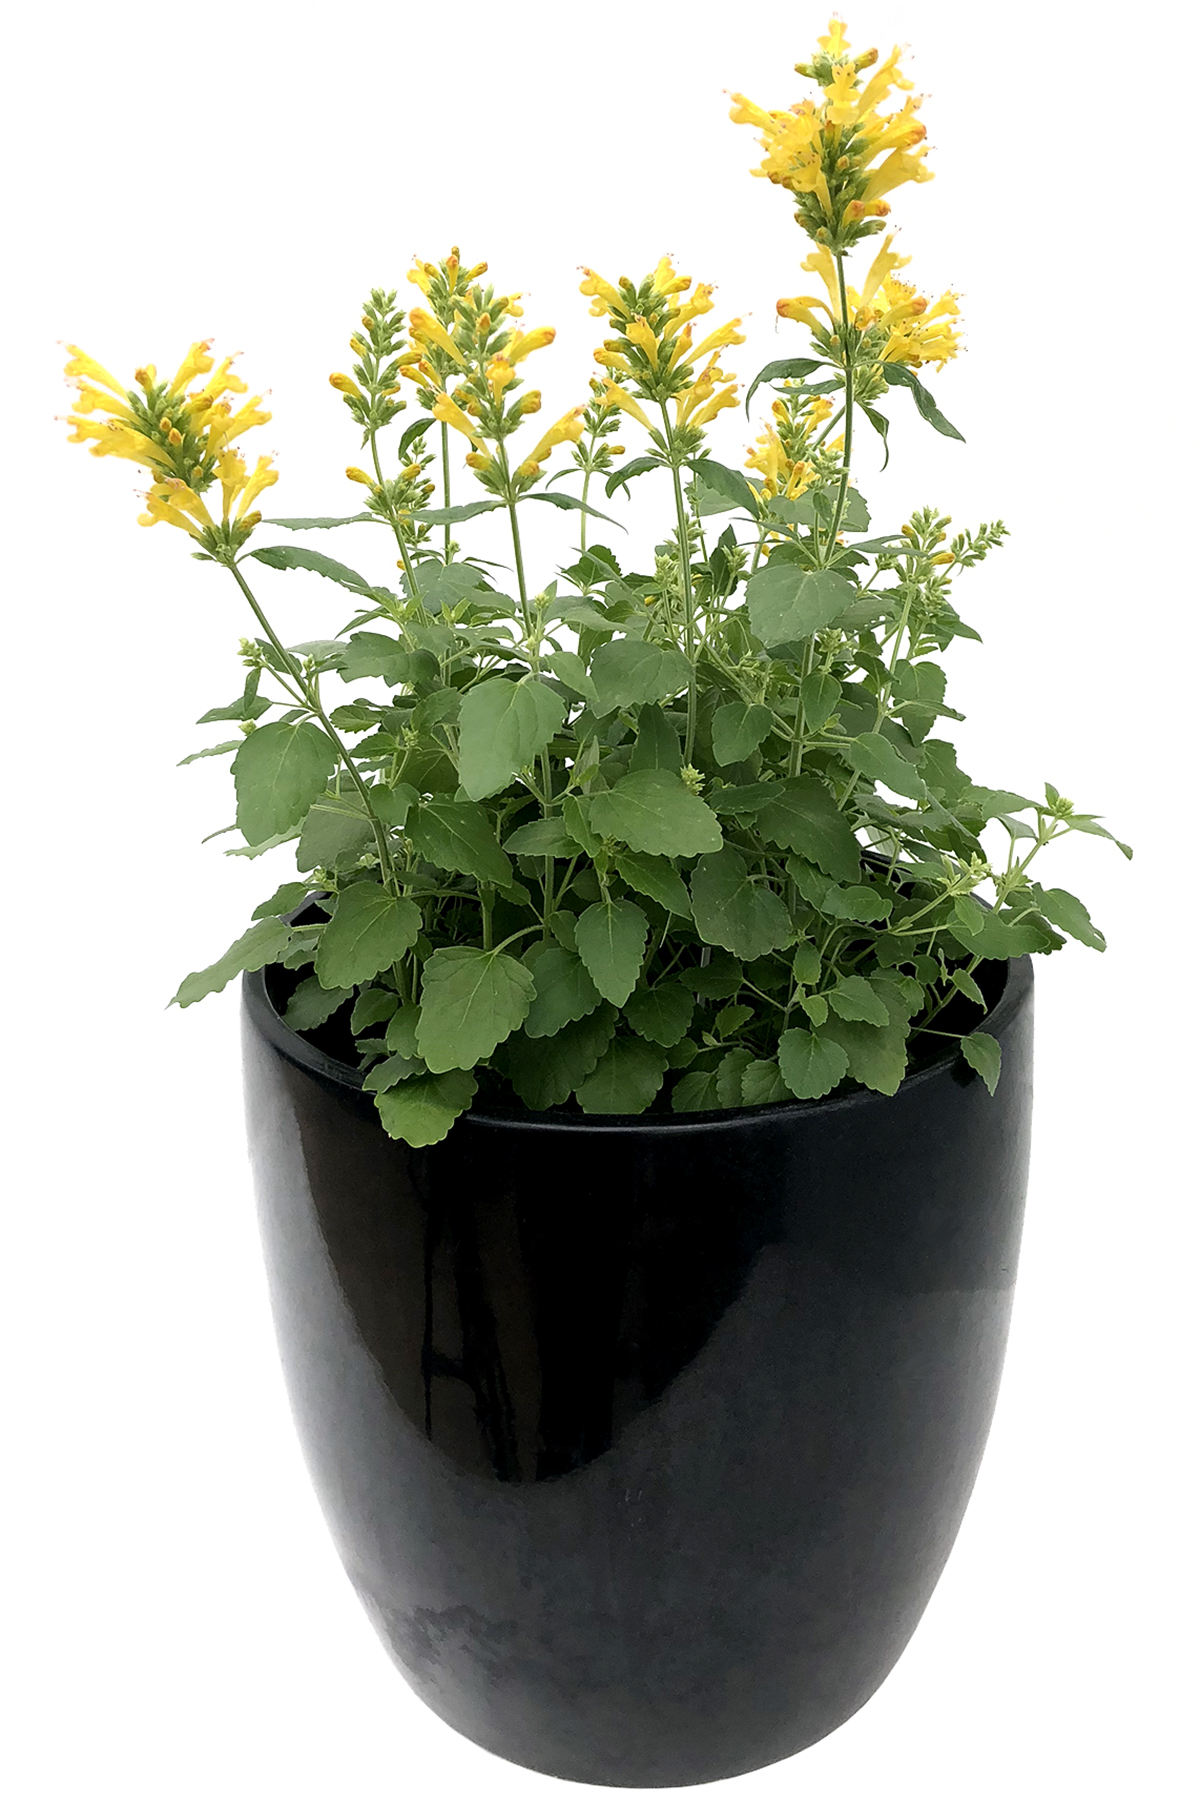 Agastache-Poquito-Butter-Yellow-5.jpg